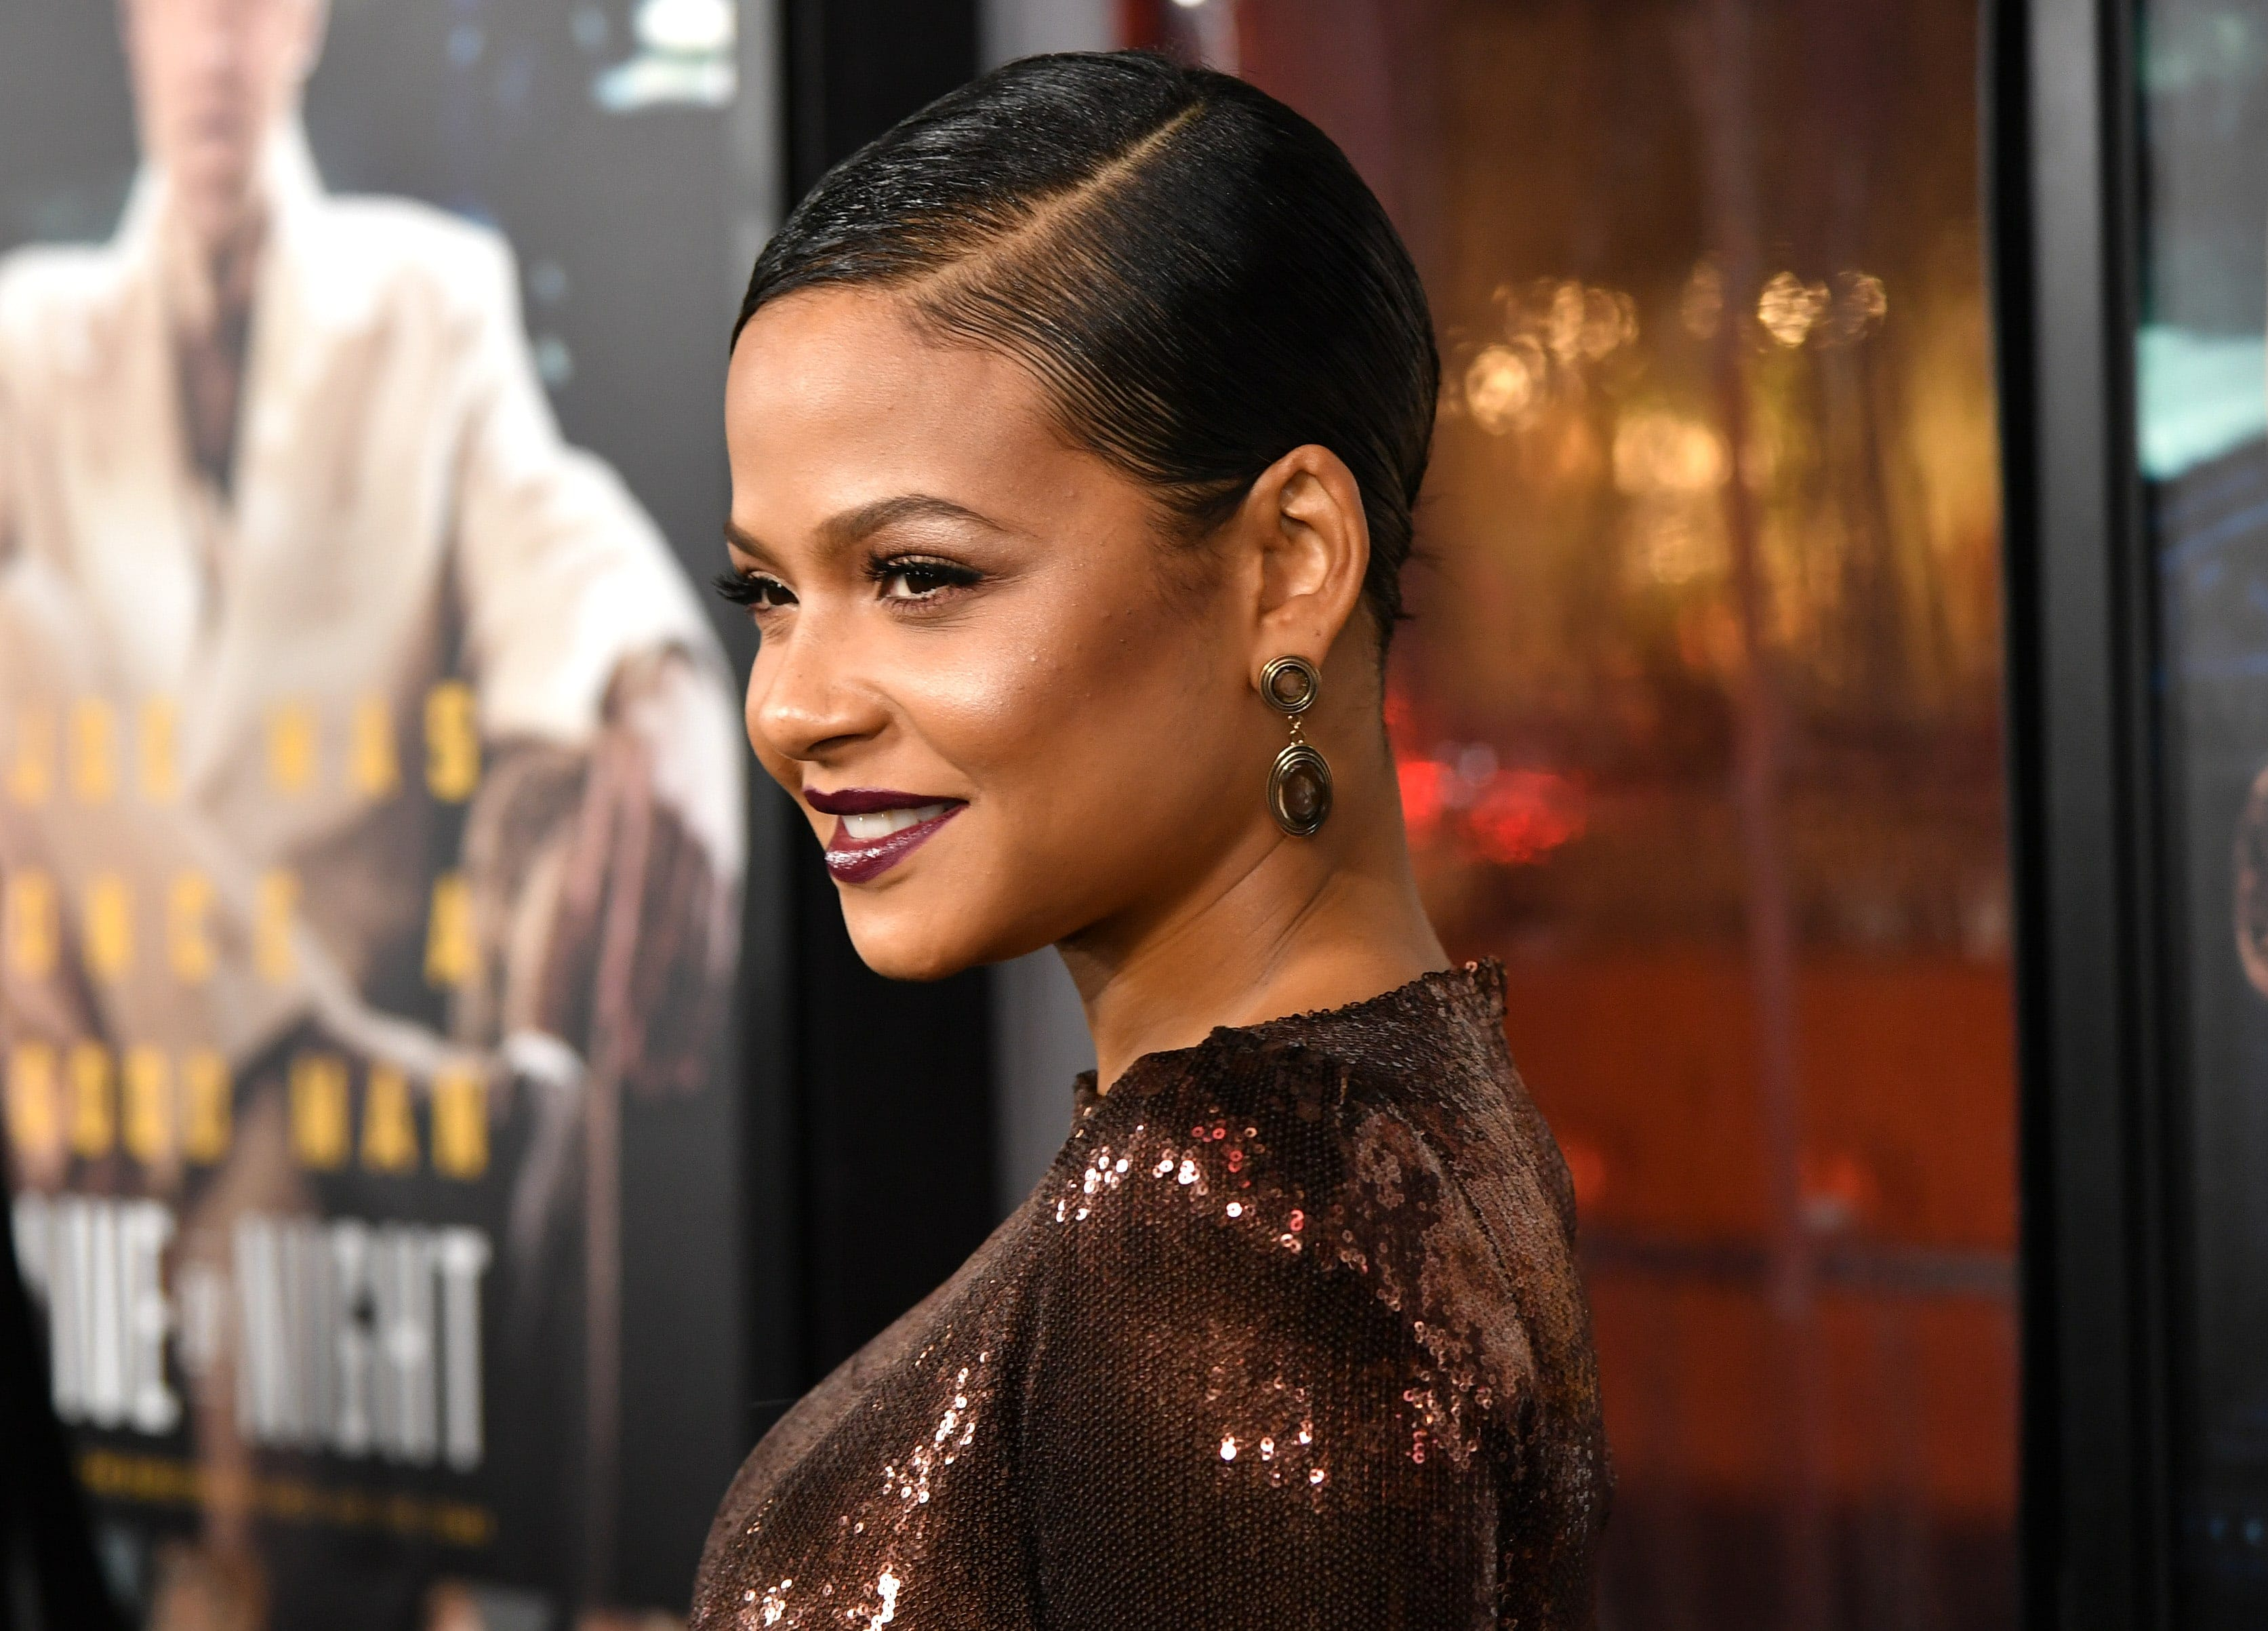 Christina Milian wearing a sleek short hairstyle with side parting